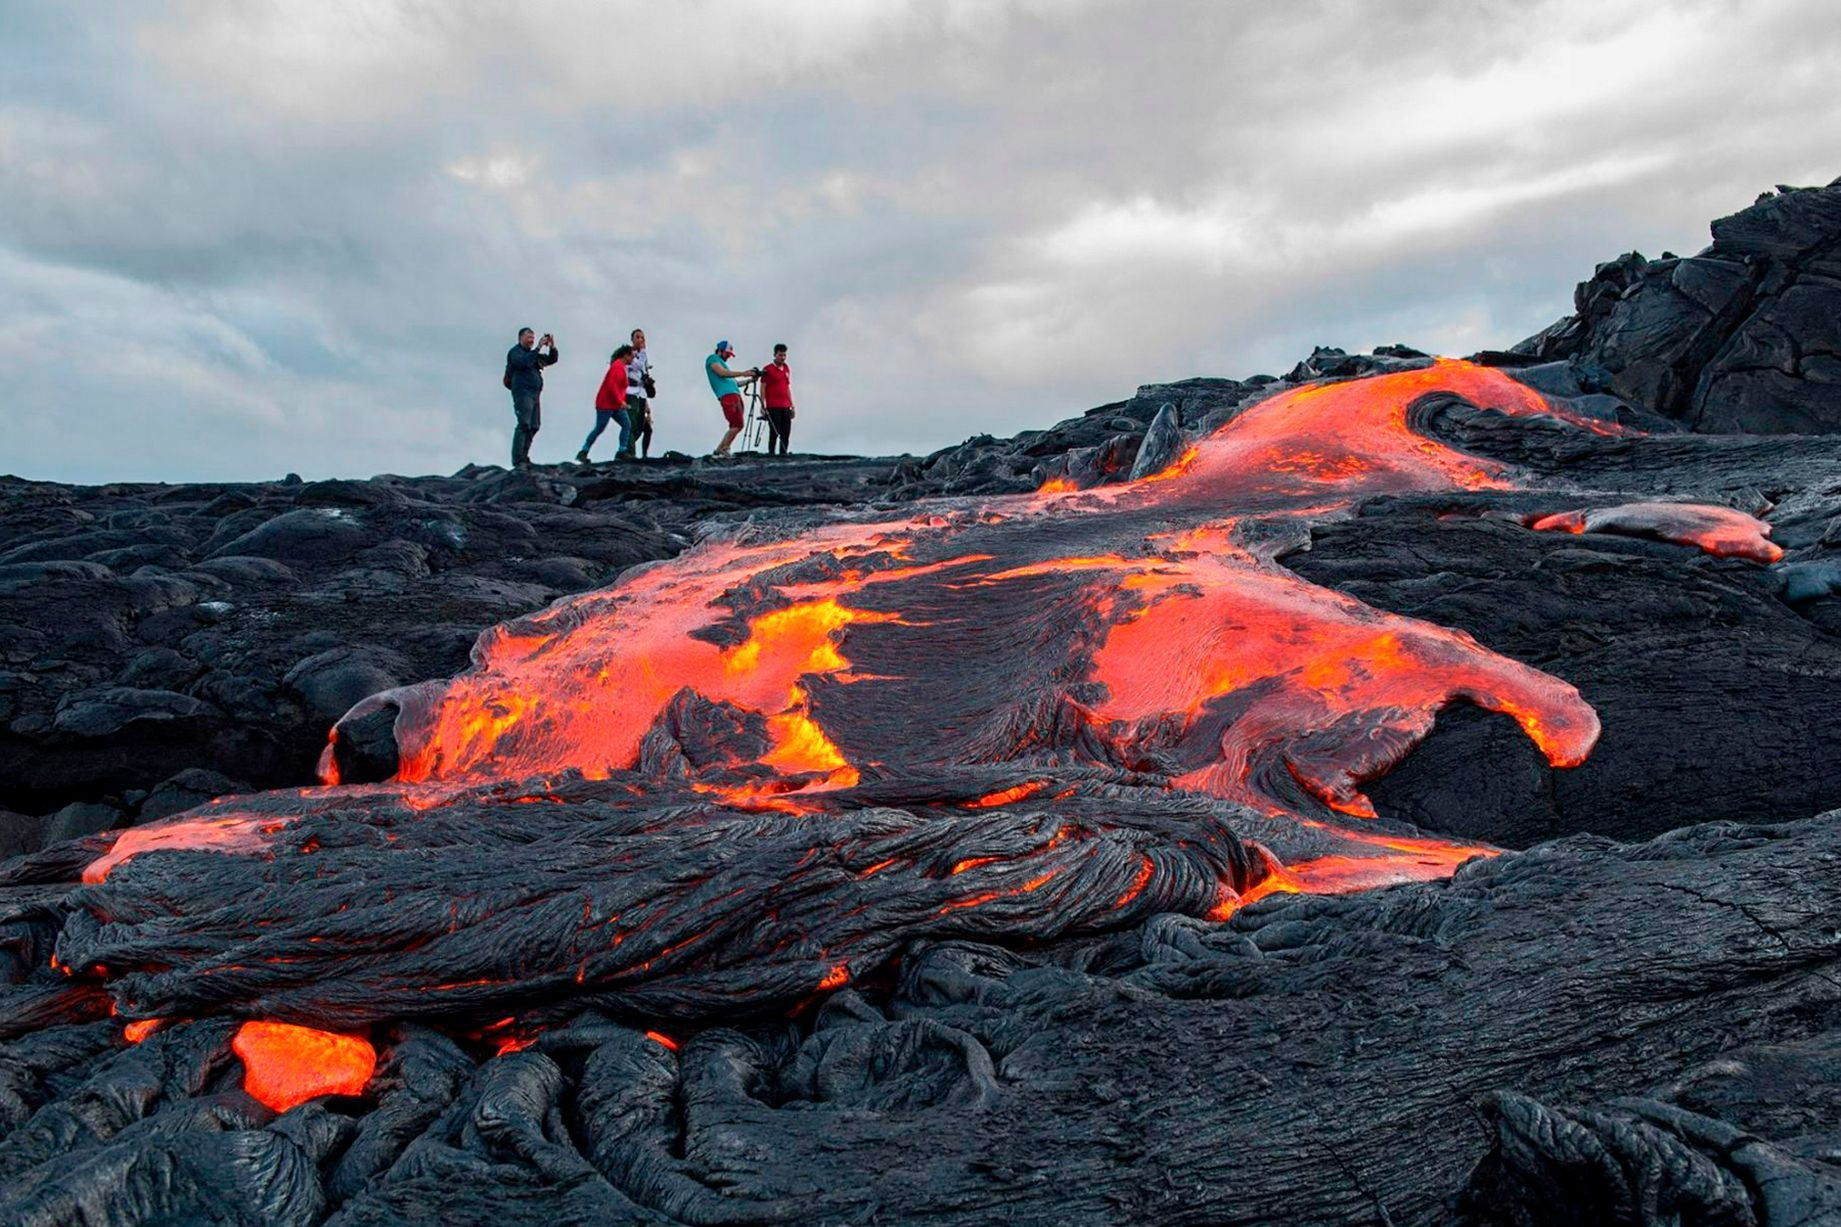 Daring tourists hike up active volcano to get as close as possible ...